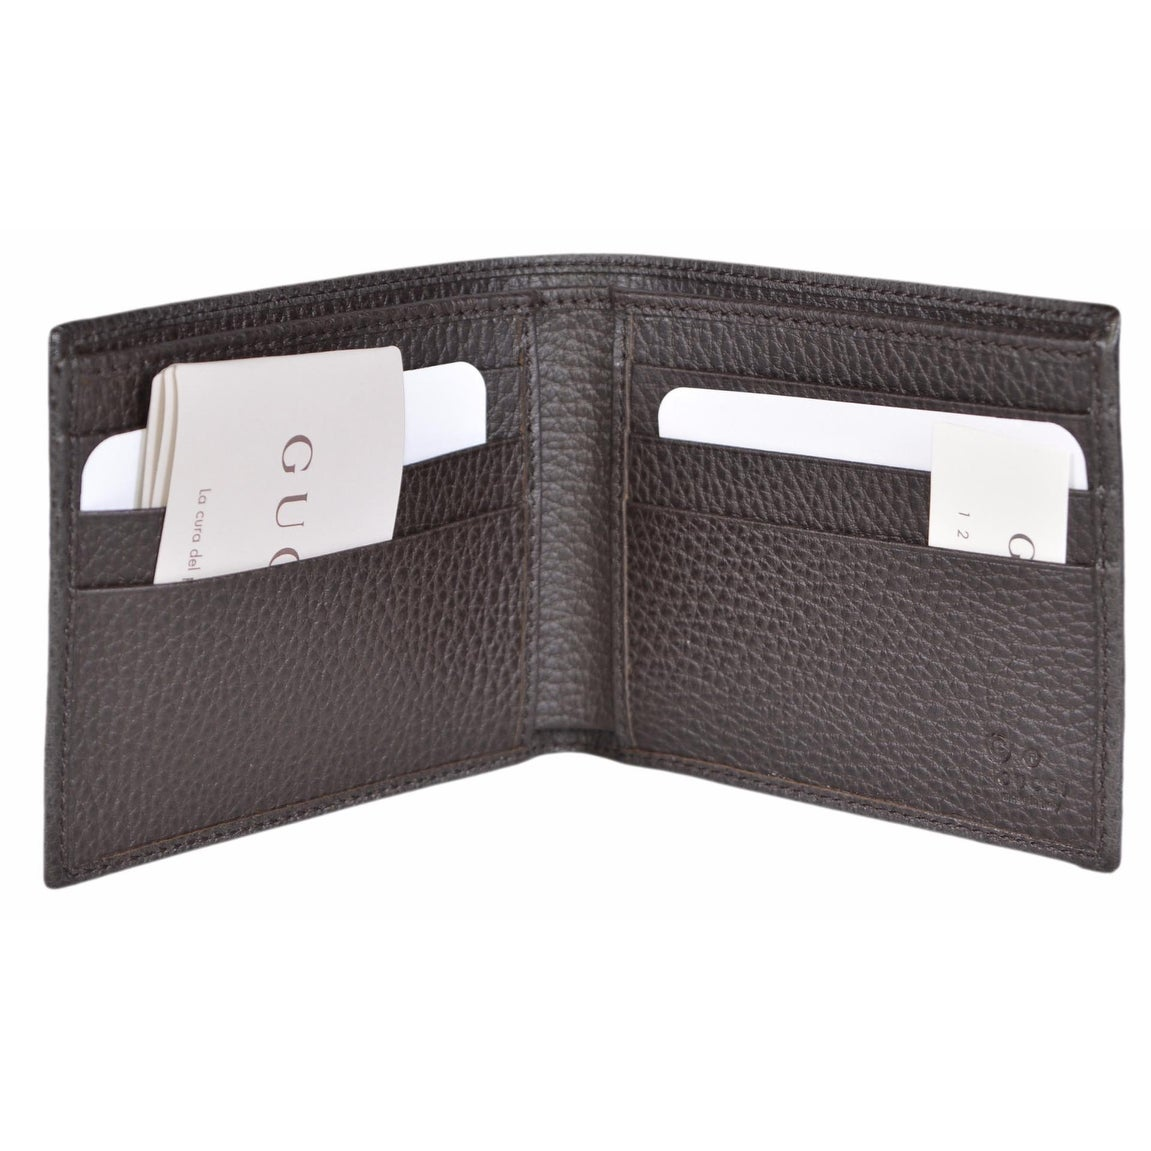 085937a7eb0 Shop Gucci Men s 260987 Beige Canvas GG Guccissima Bifold Wallet - ebony  beige - Free Shipping Today - Overstock - 15999256